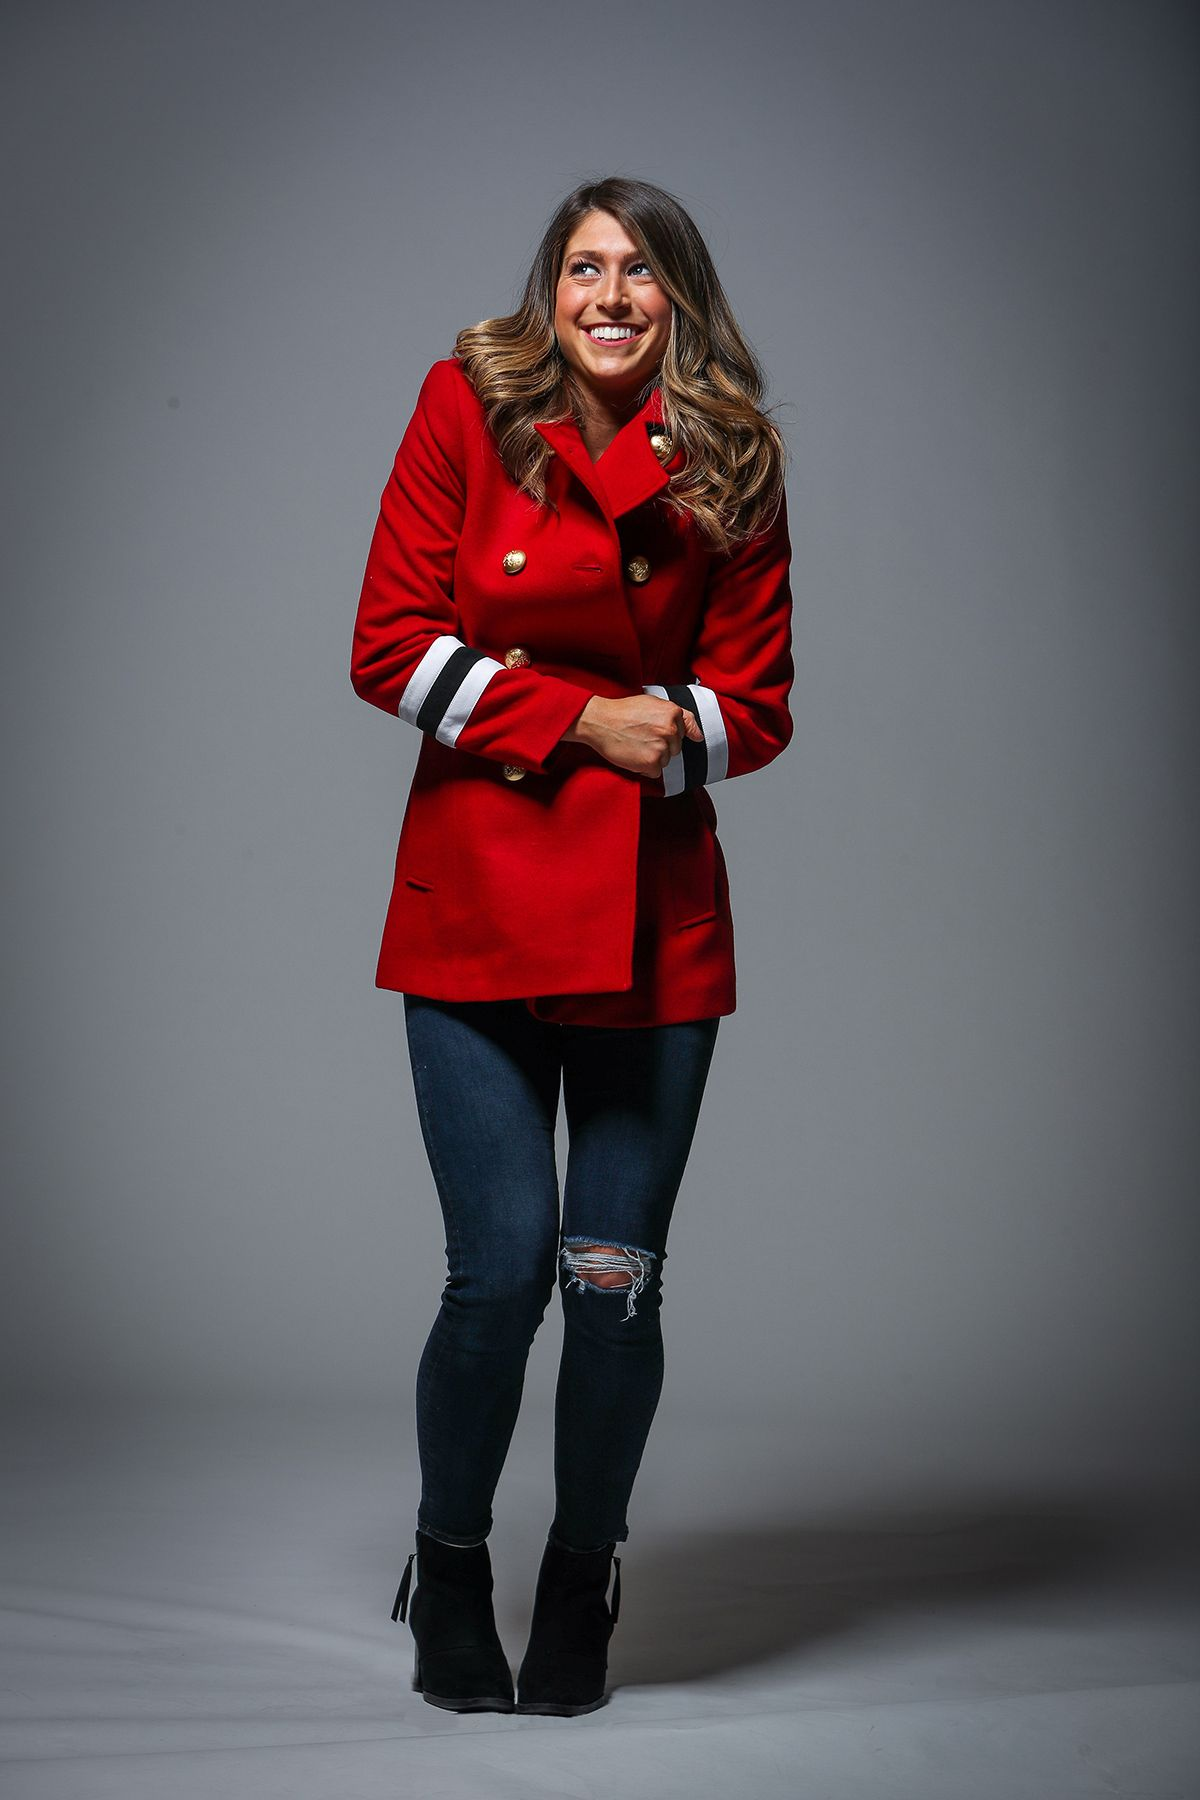 Stay warm this holiday season with this JPA Pea Coat